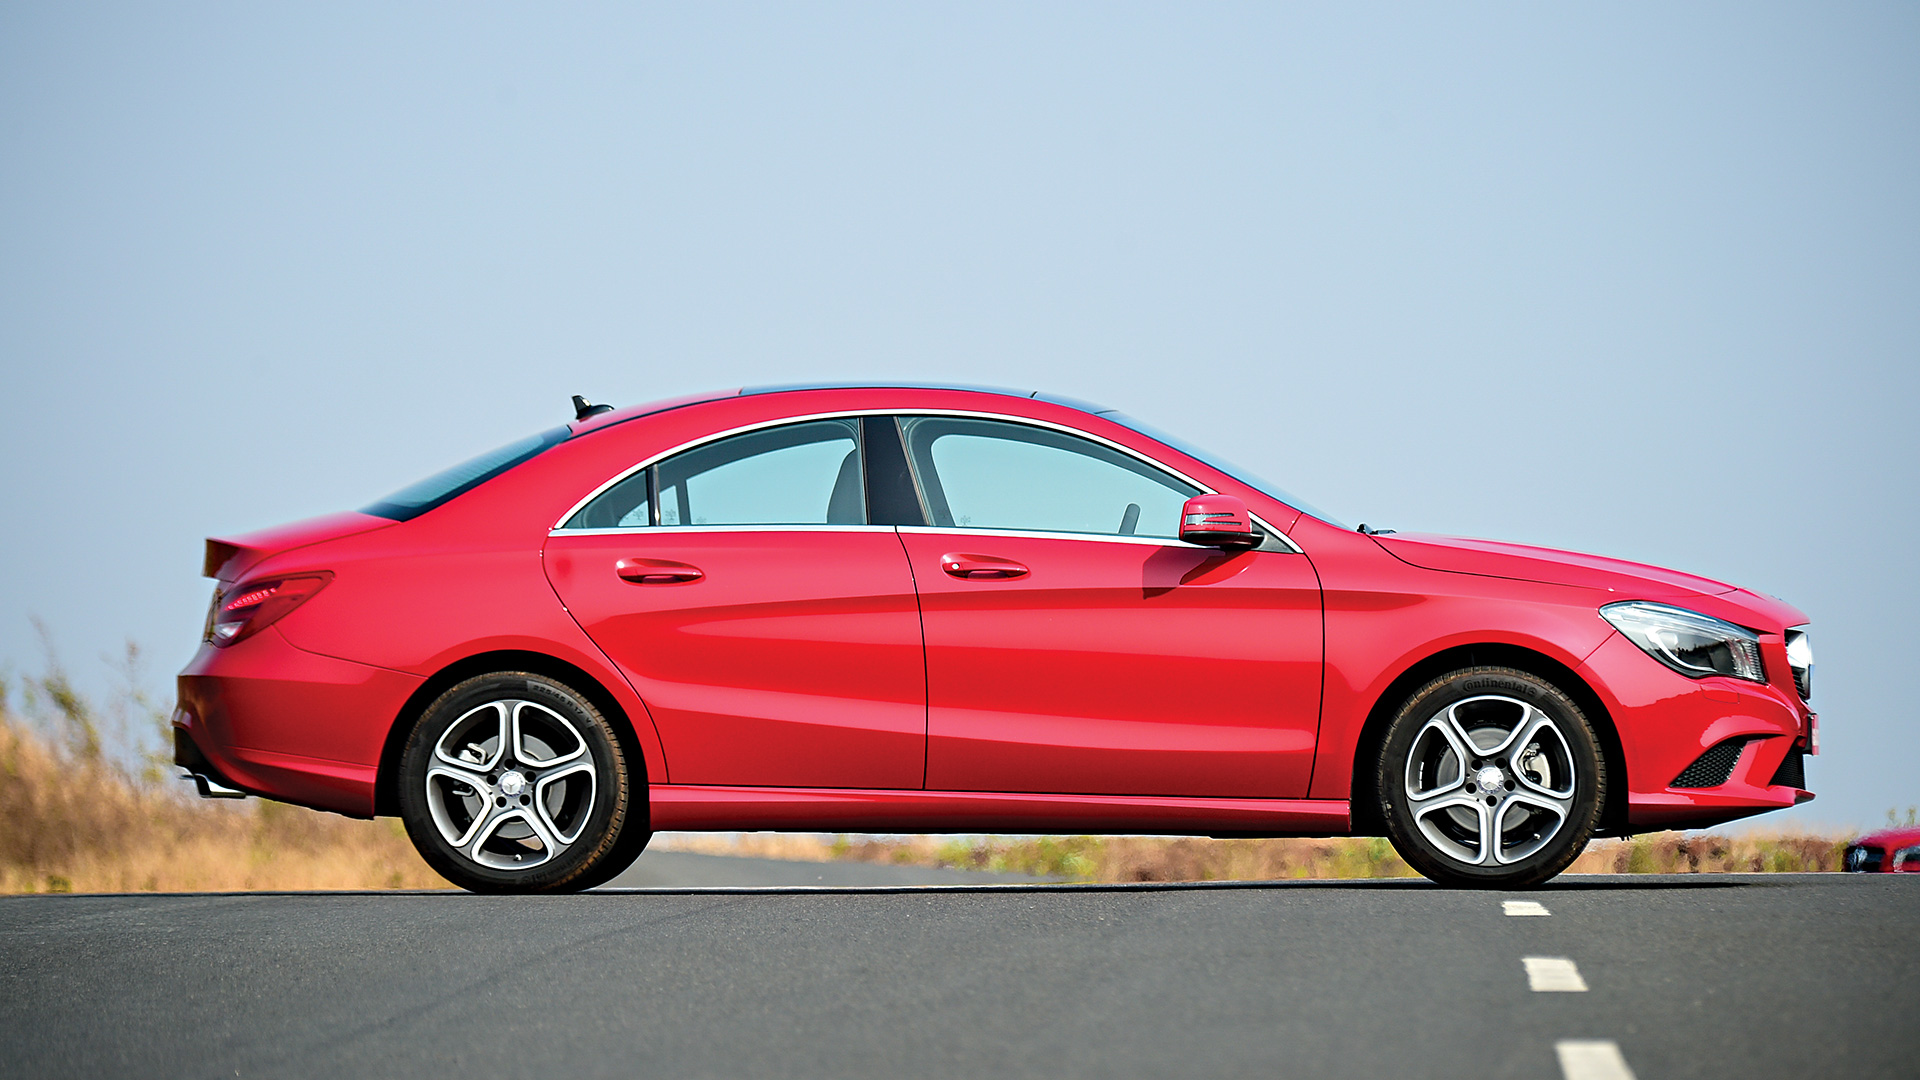 Mercedes benz cla 2018 price mileage reviews for Mercedes benz cla 2015 price